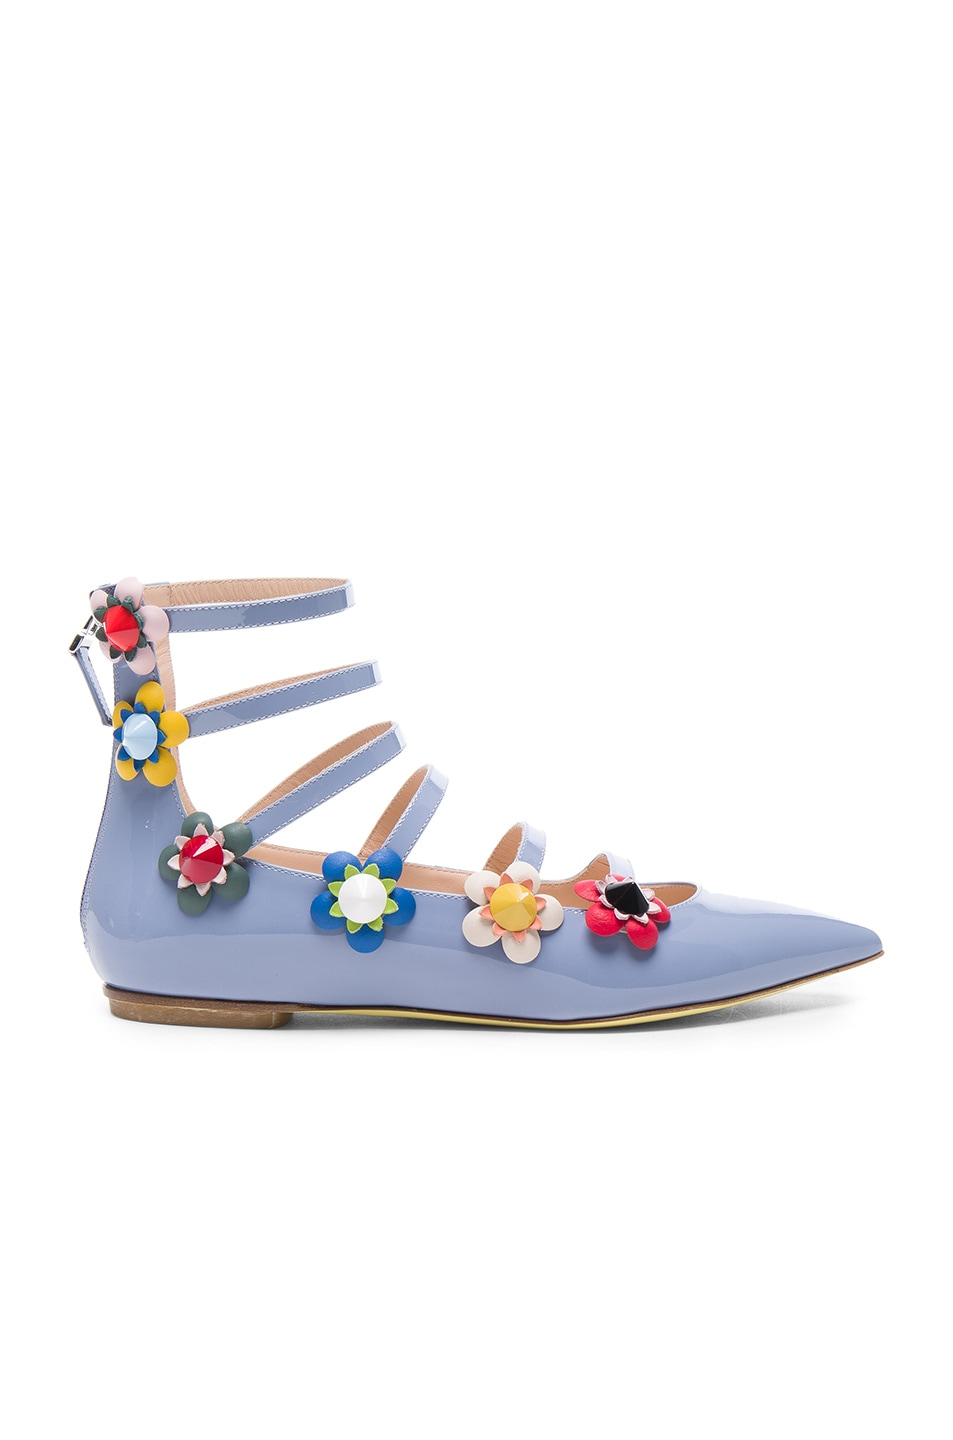 Image 1 of Fendi Patent Leather Multi Strap Flats in Lillagry Flowerland